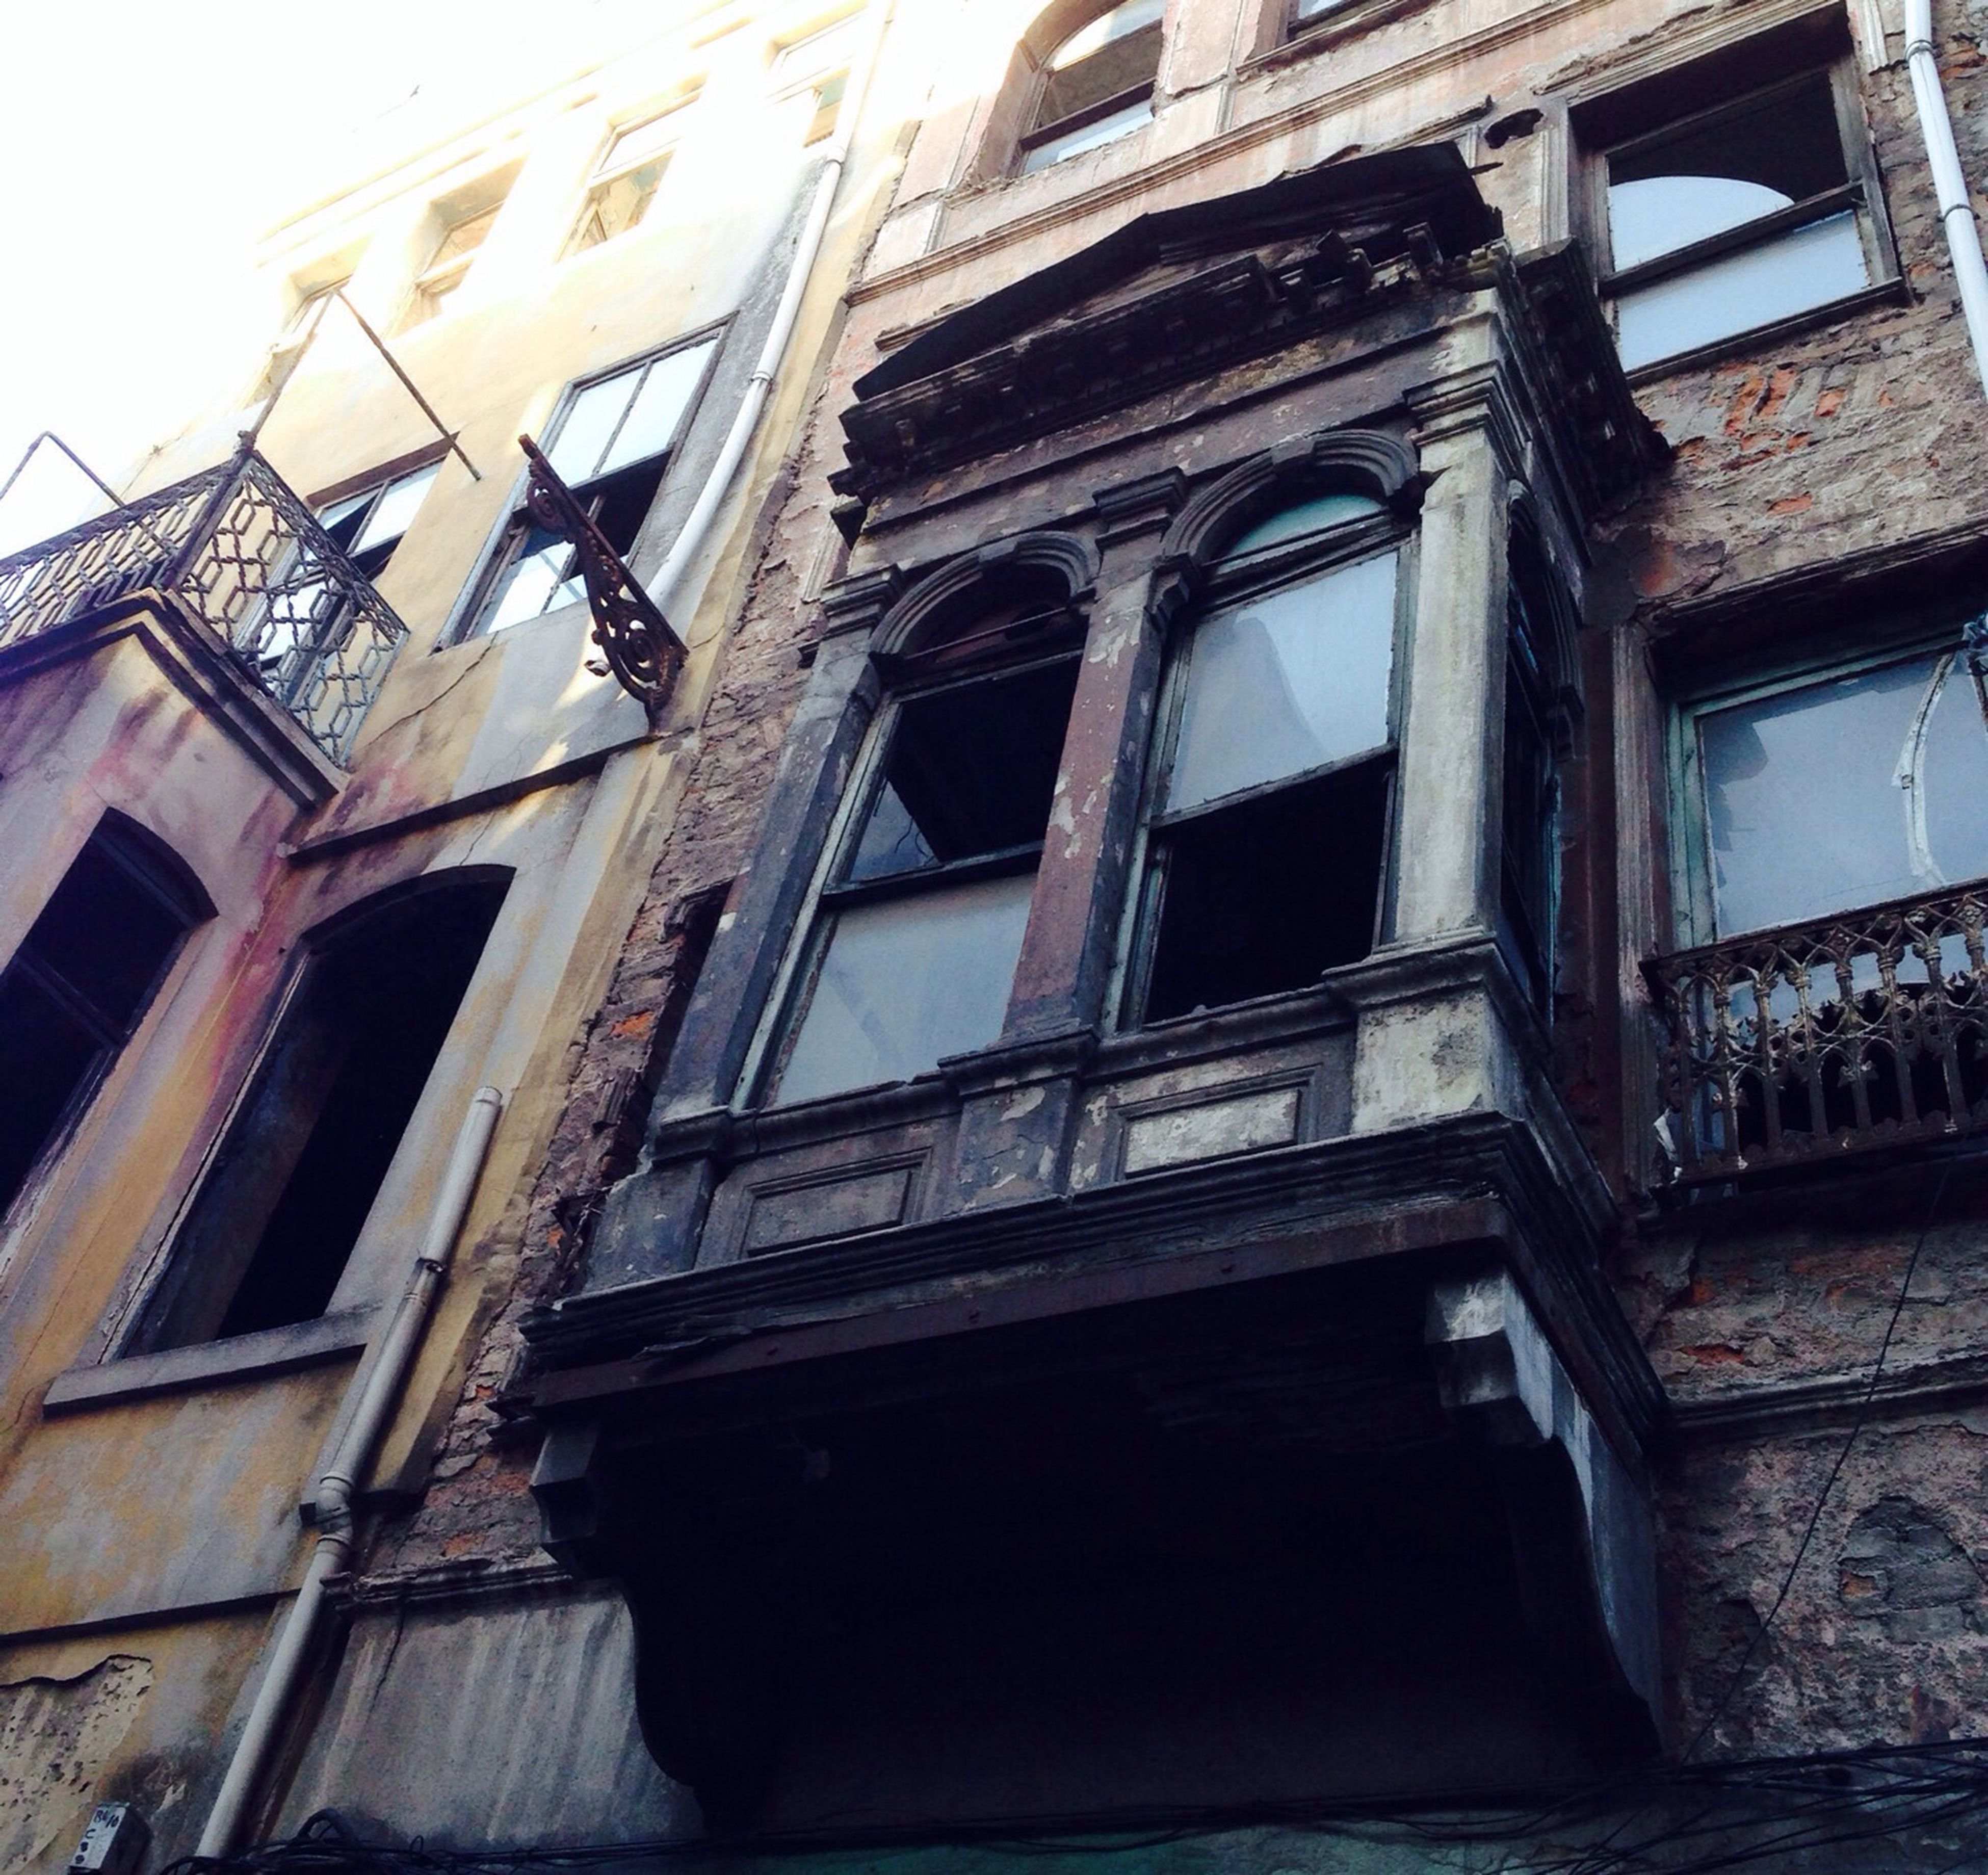 architecture, building exterior, built structure, low angle view, window, building, residential building, residential structure, old, abandoned, damaged, brick wall, house, weathered, obsolete, outdoors, day, no people, run-down, deterioration